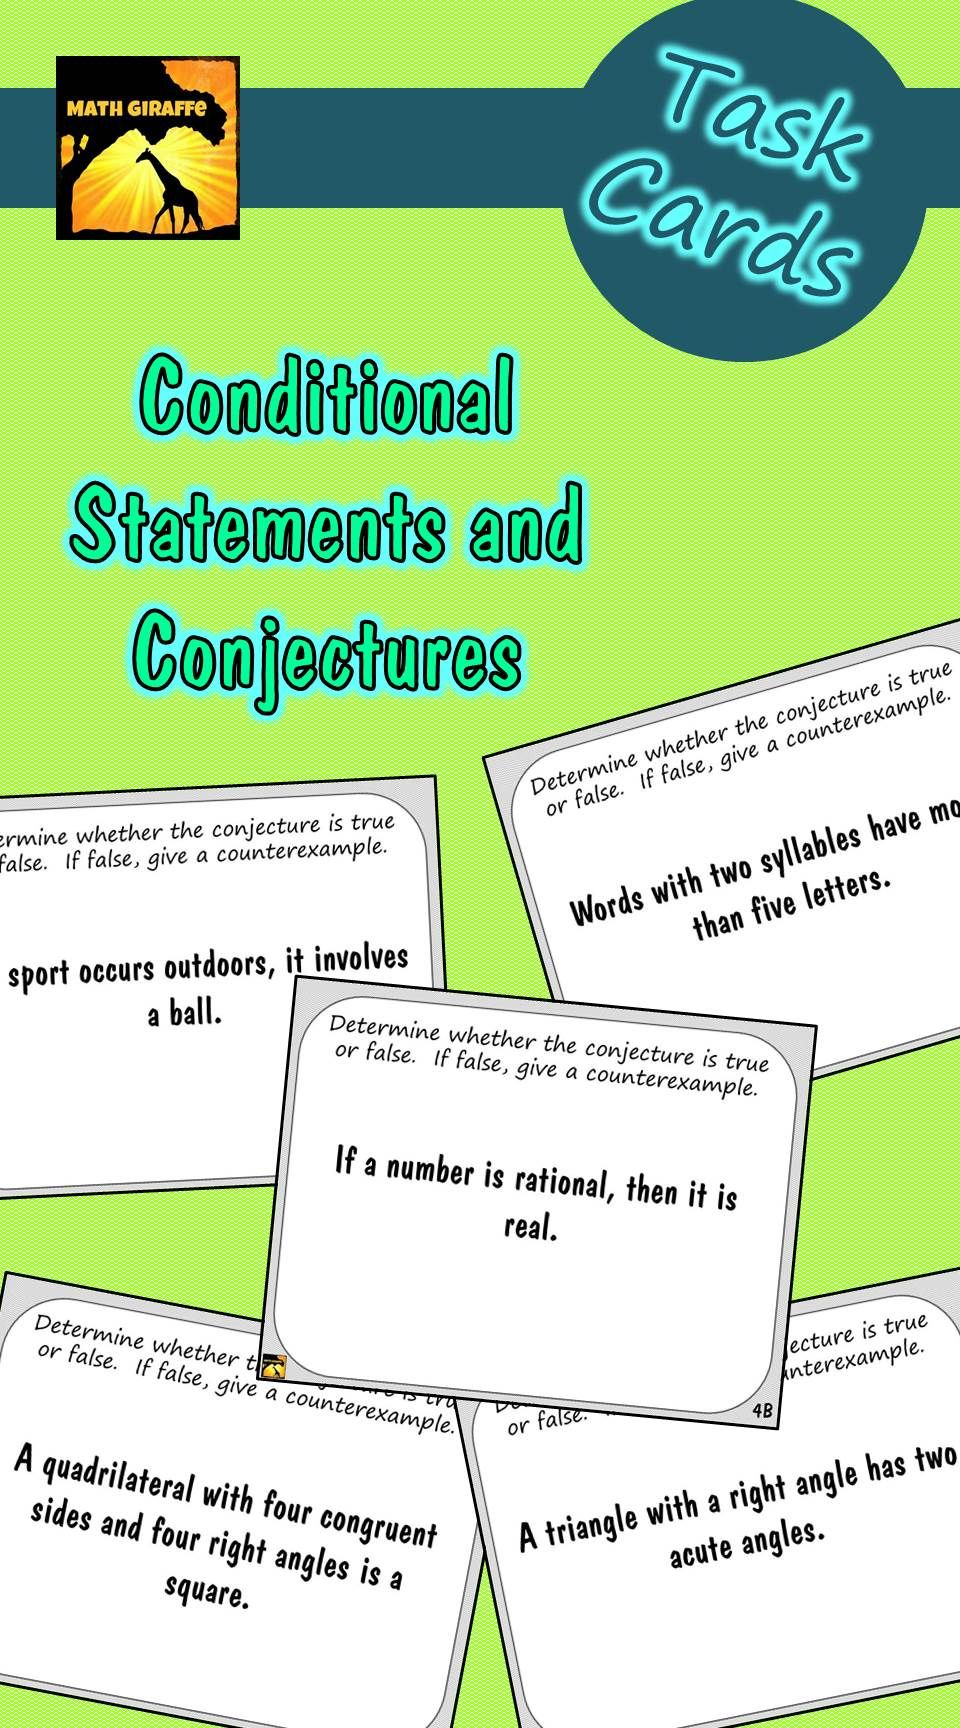 Worksheets Converse Inverse Contrapositive Worksheet conditional statements inverse converse contrapositive i have task cards and conjectures